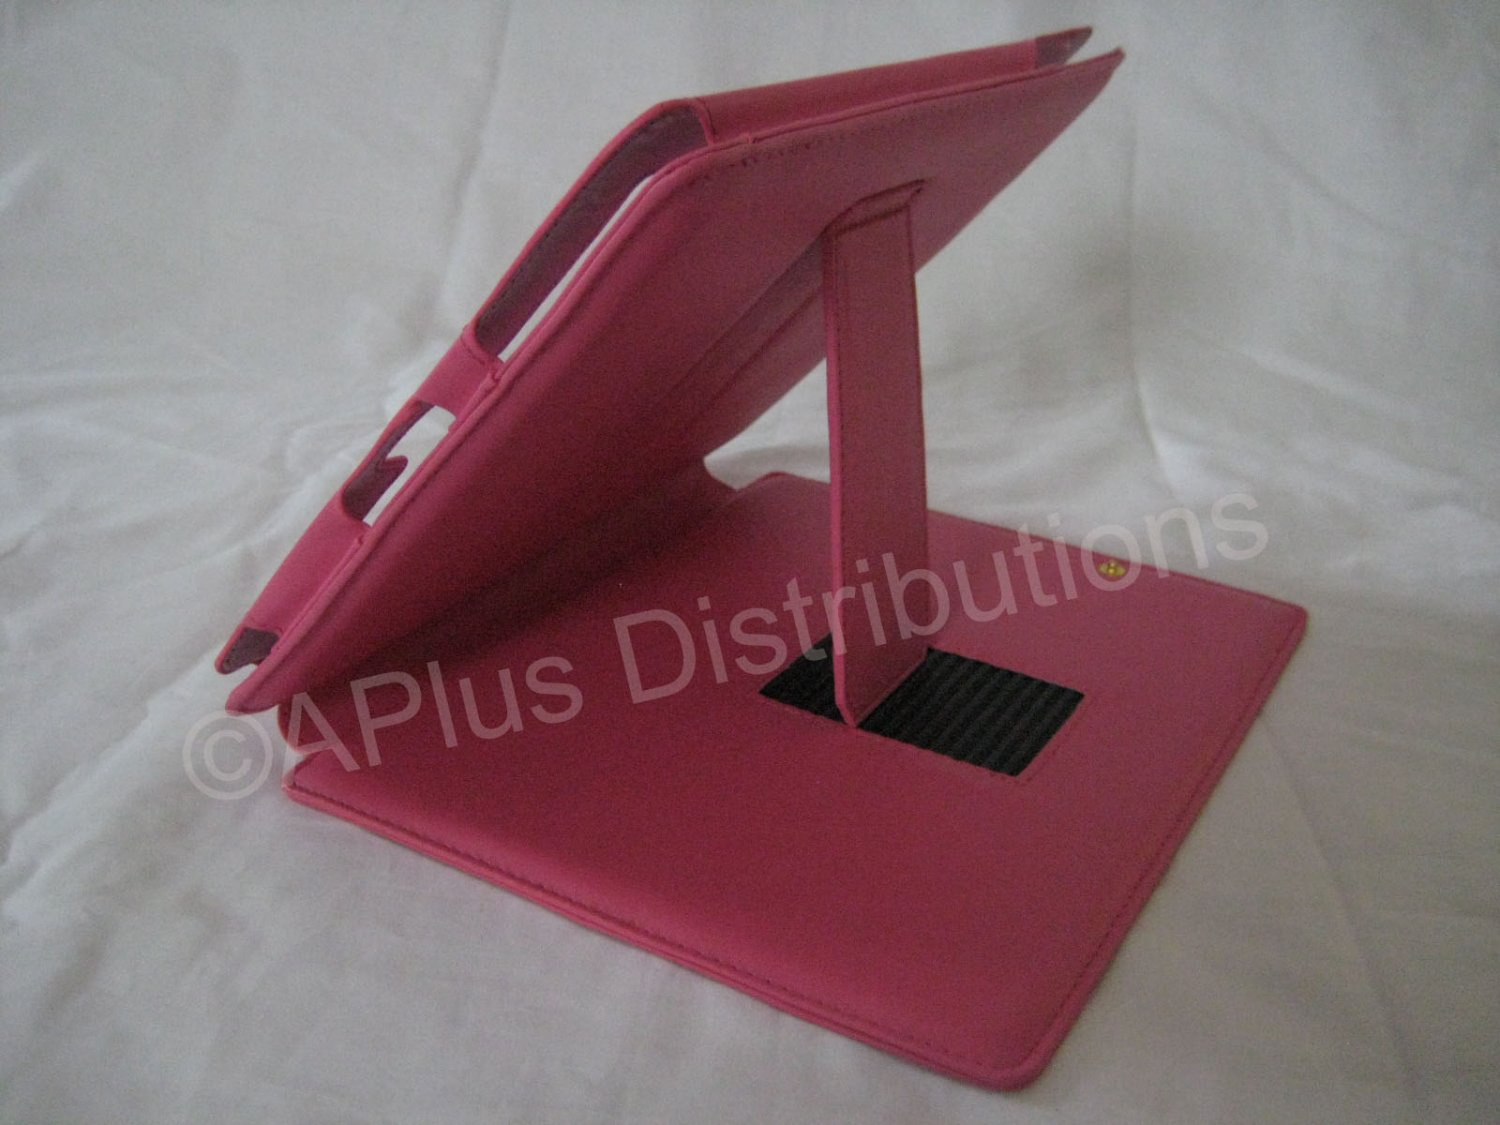 New Leather Case with Kickstand & Pocket for Apple iPad - HOT PINK